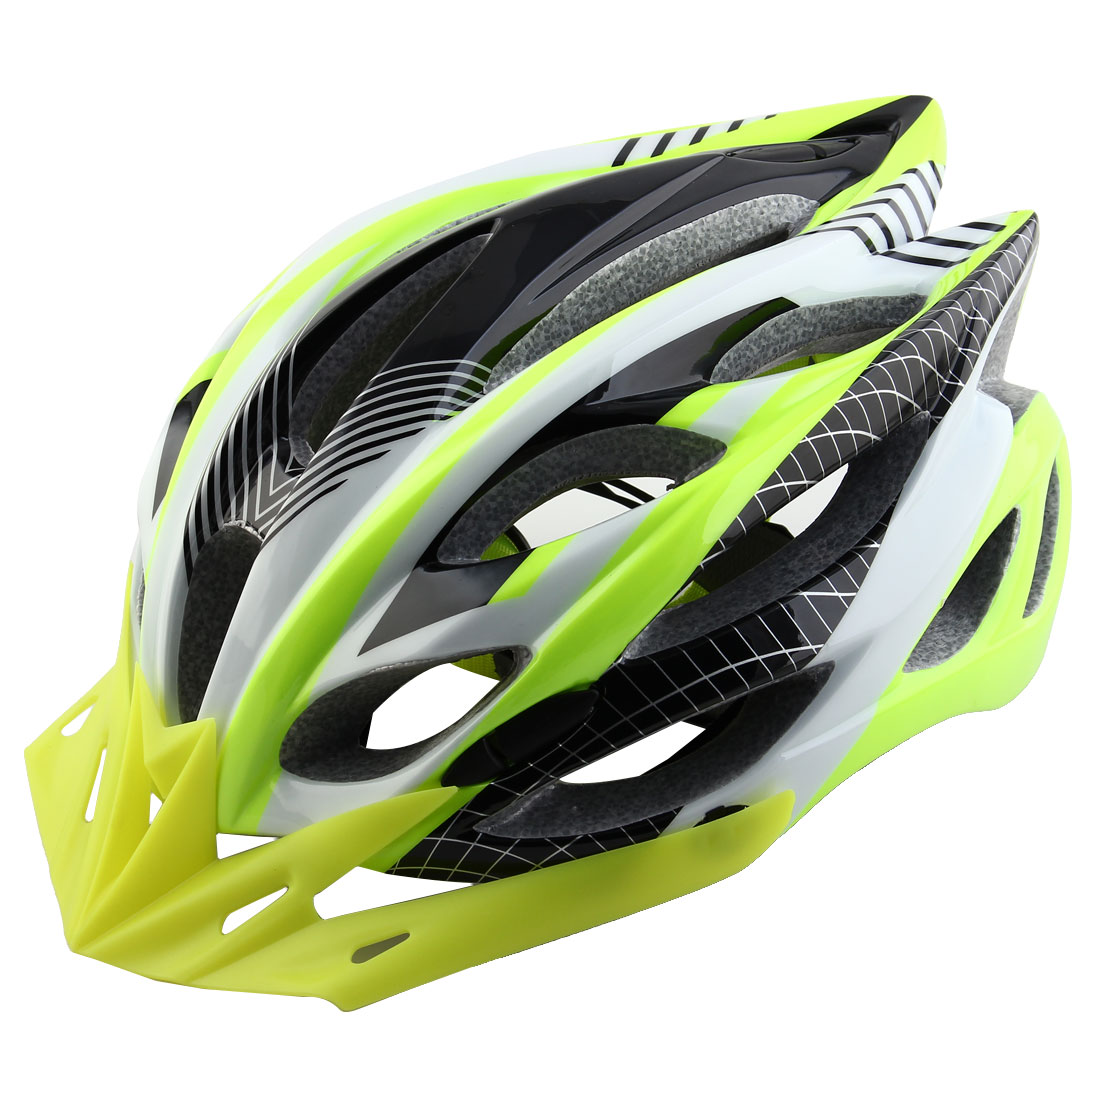 Patent Authorized Adult Unisex Removable Visor Cycling Cap Bicycle Hat Adjustable Safety Bike Helmet Fluorescent Green